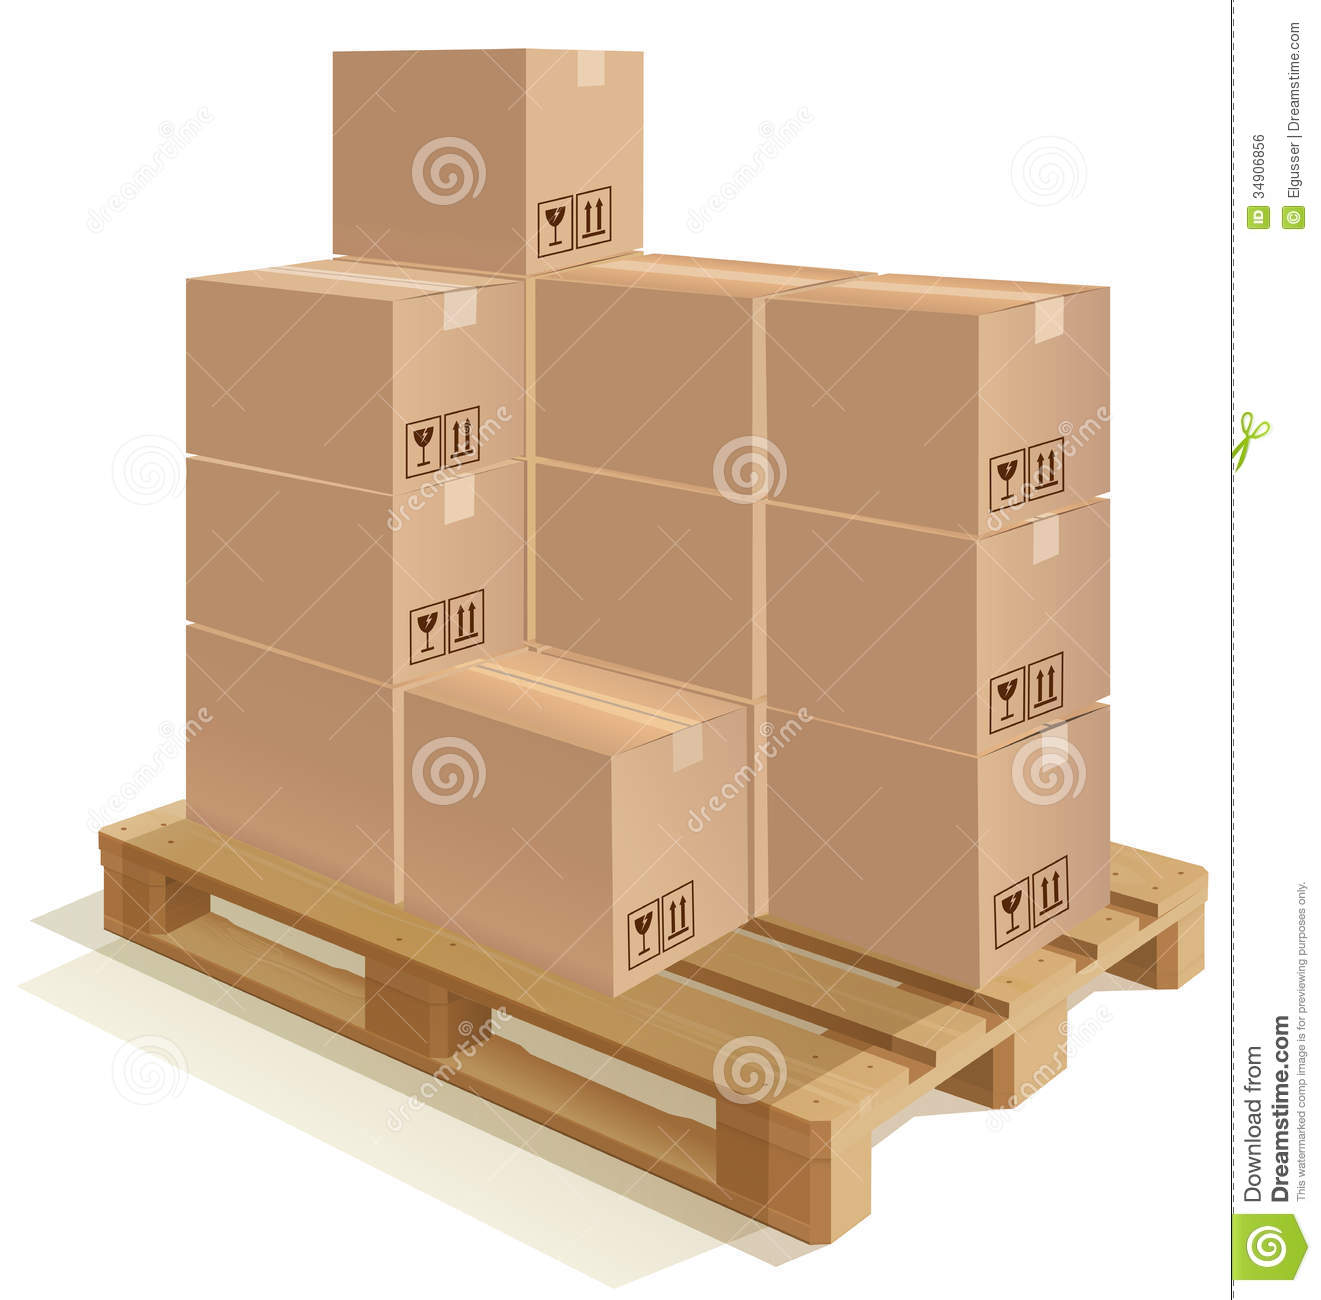 On . Boxes clipart pallet